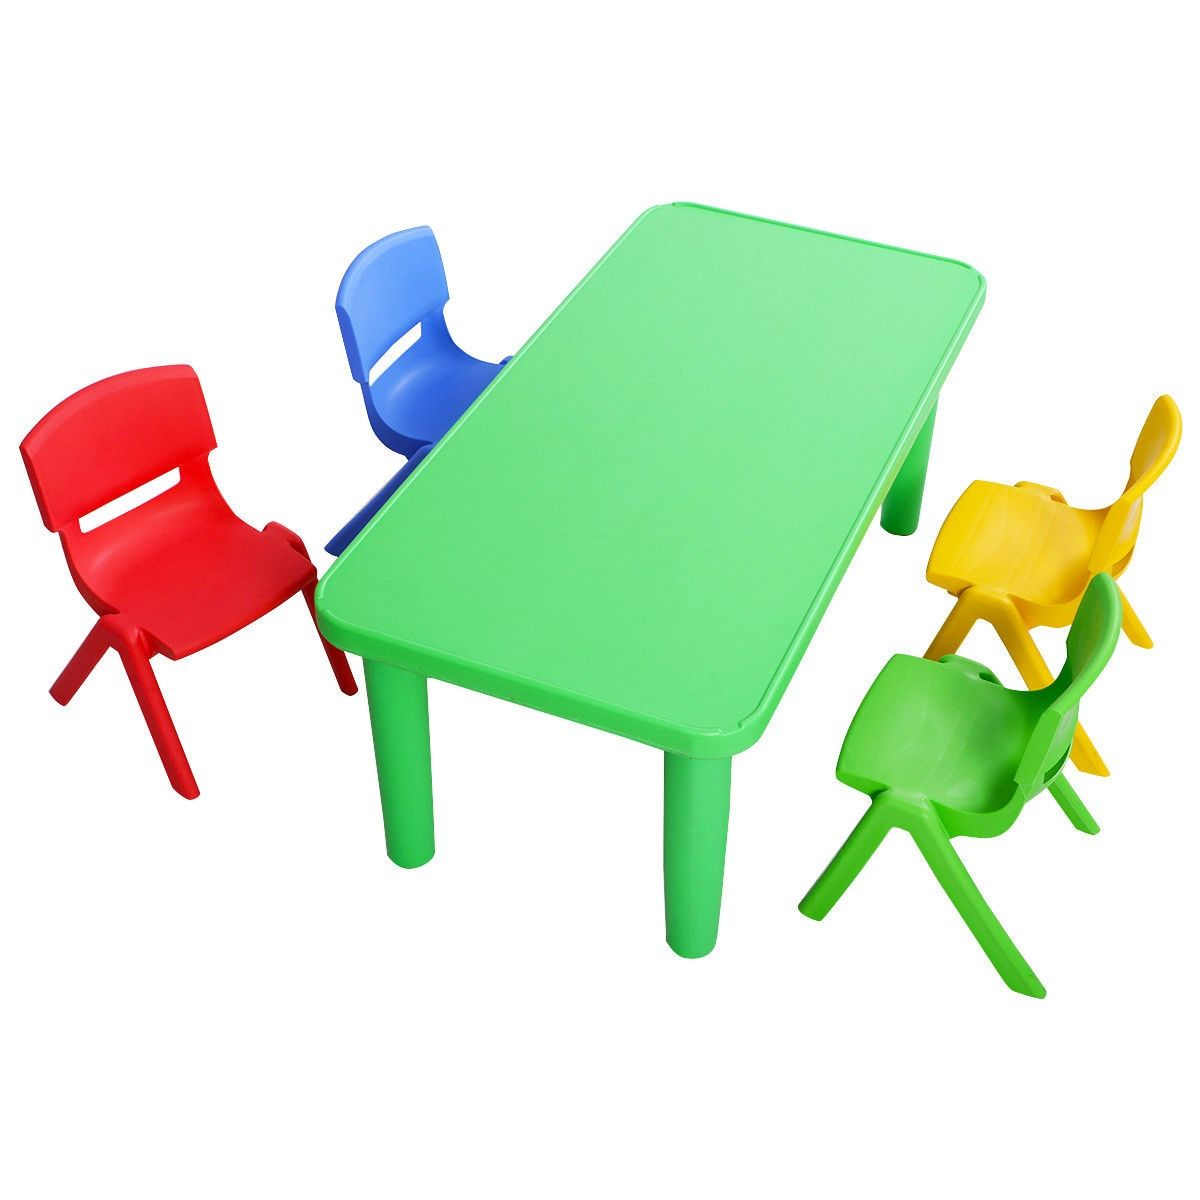 Kids Colorful Plastic Table And 4 Chairs Set Plastic Tables